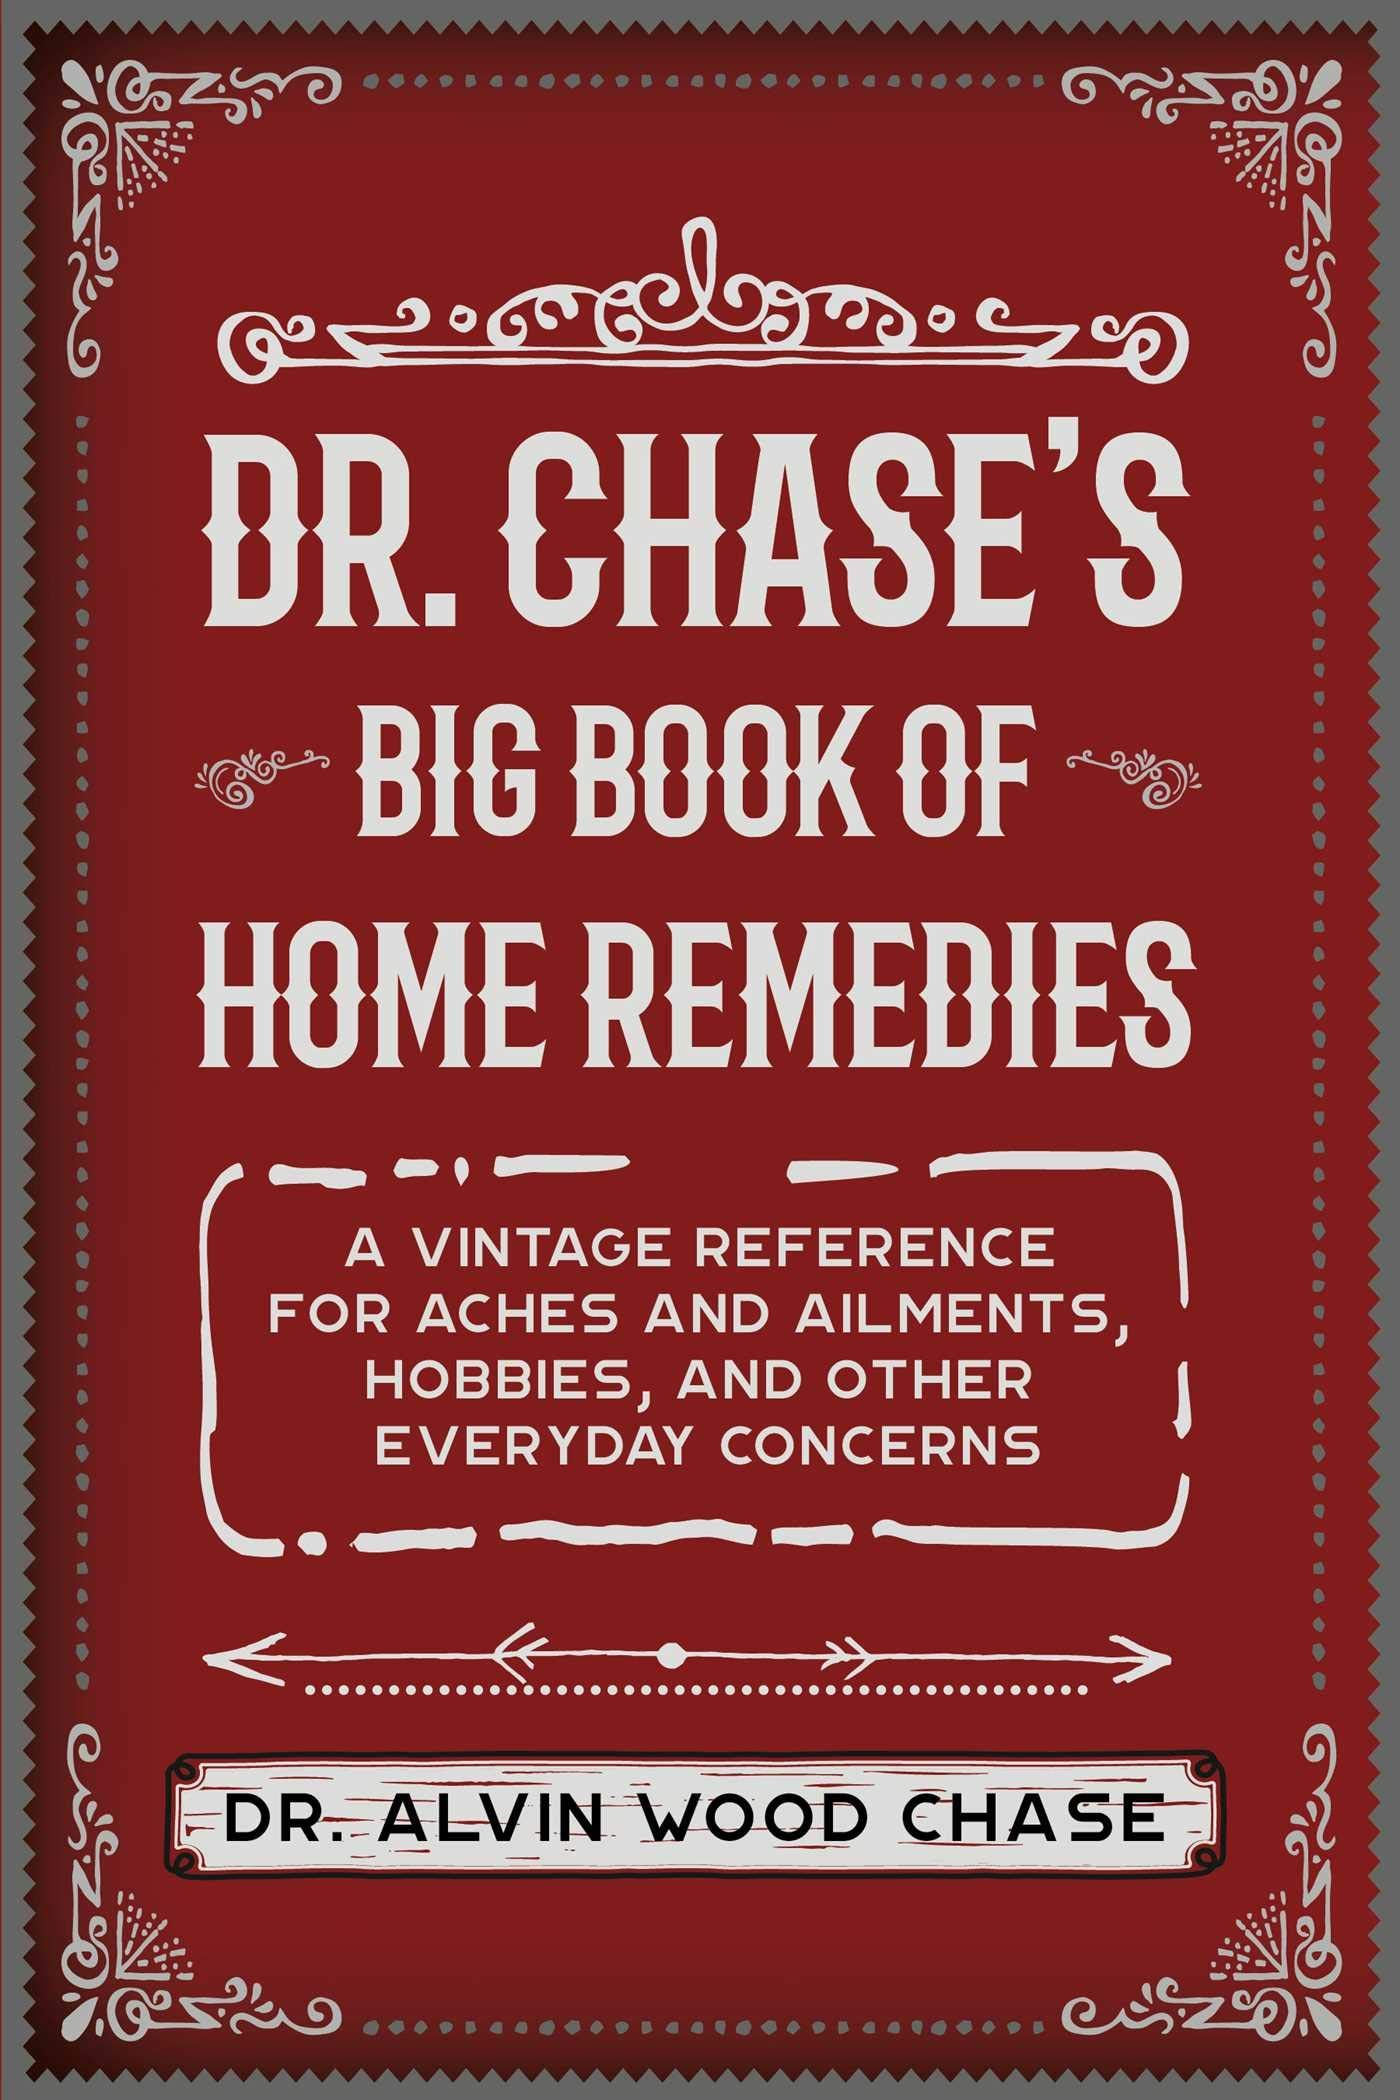 Dr Chase S Big Book Of Home Remedies A Vintage Reference For Aches And Ailments Hobbies And Other Everyday Concerns By Alvi In 2020 Big Book Home Remedies Remedies